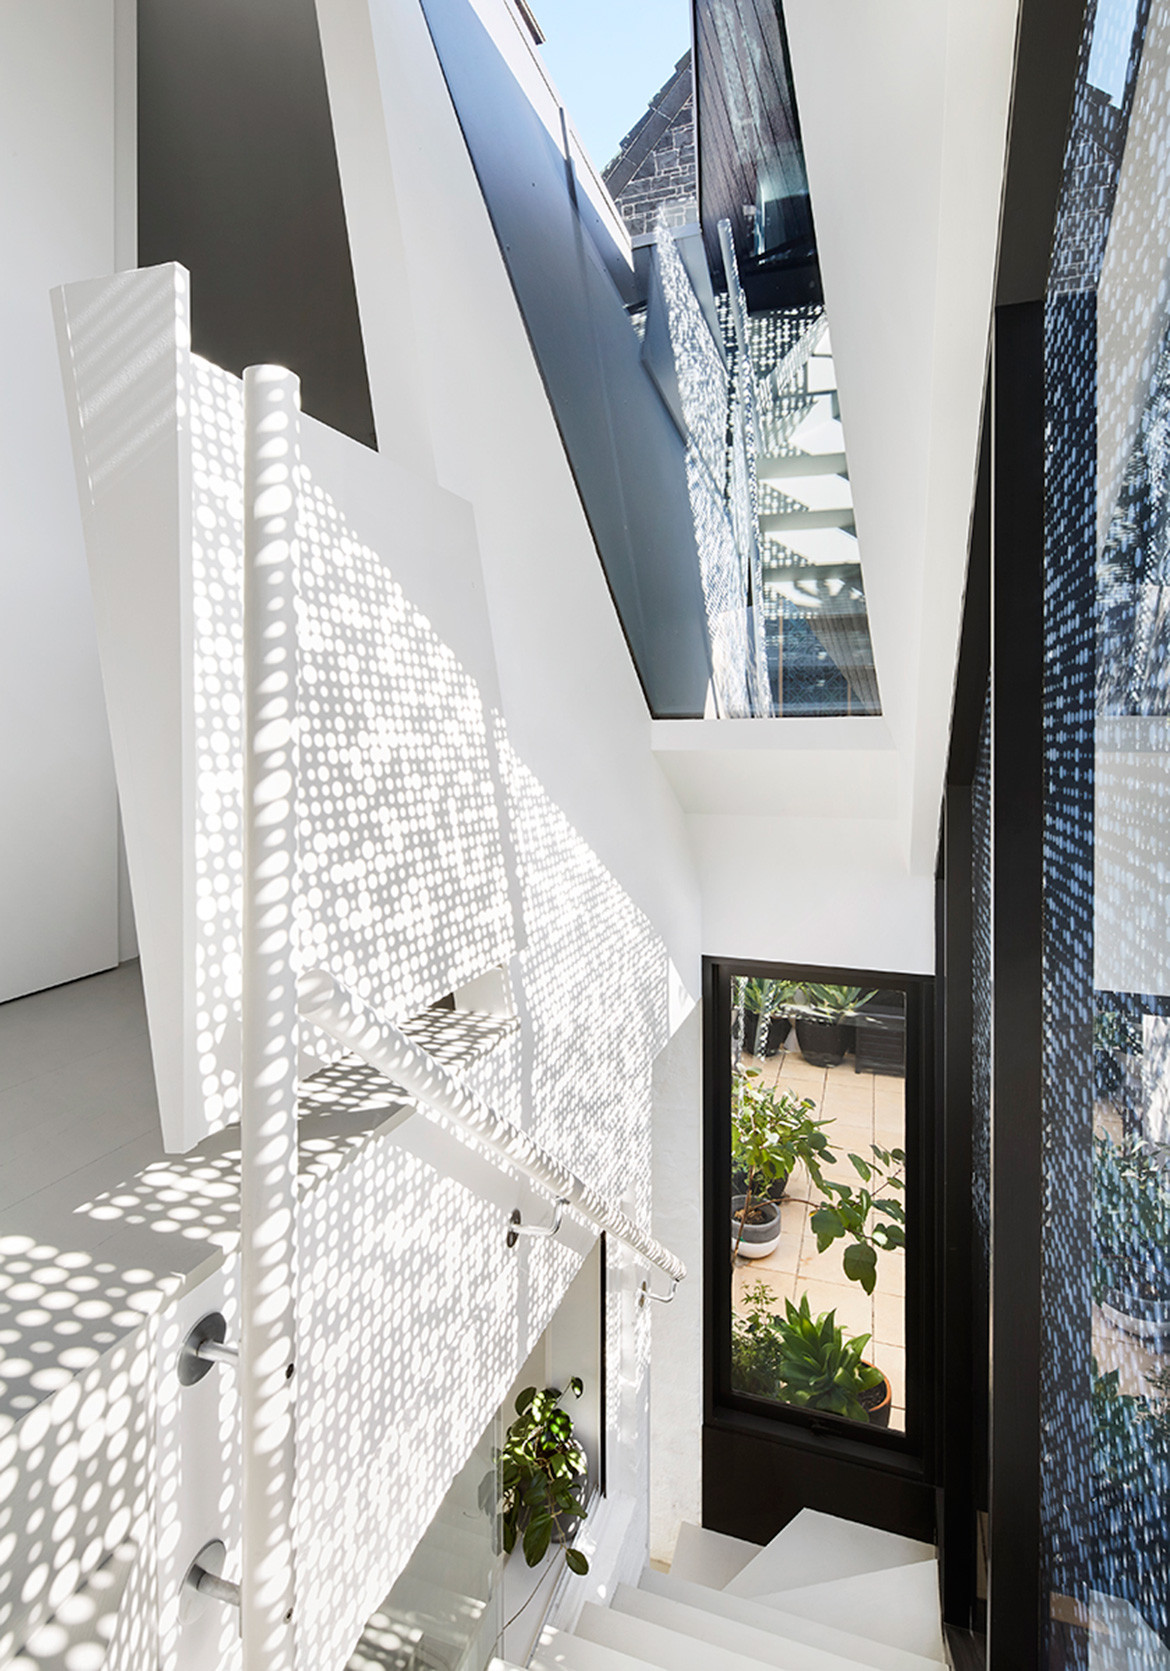 Moor Street Residence Whiting Architects cc Tess Kelly staircase